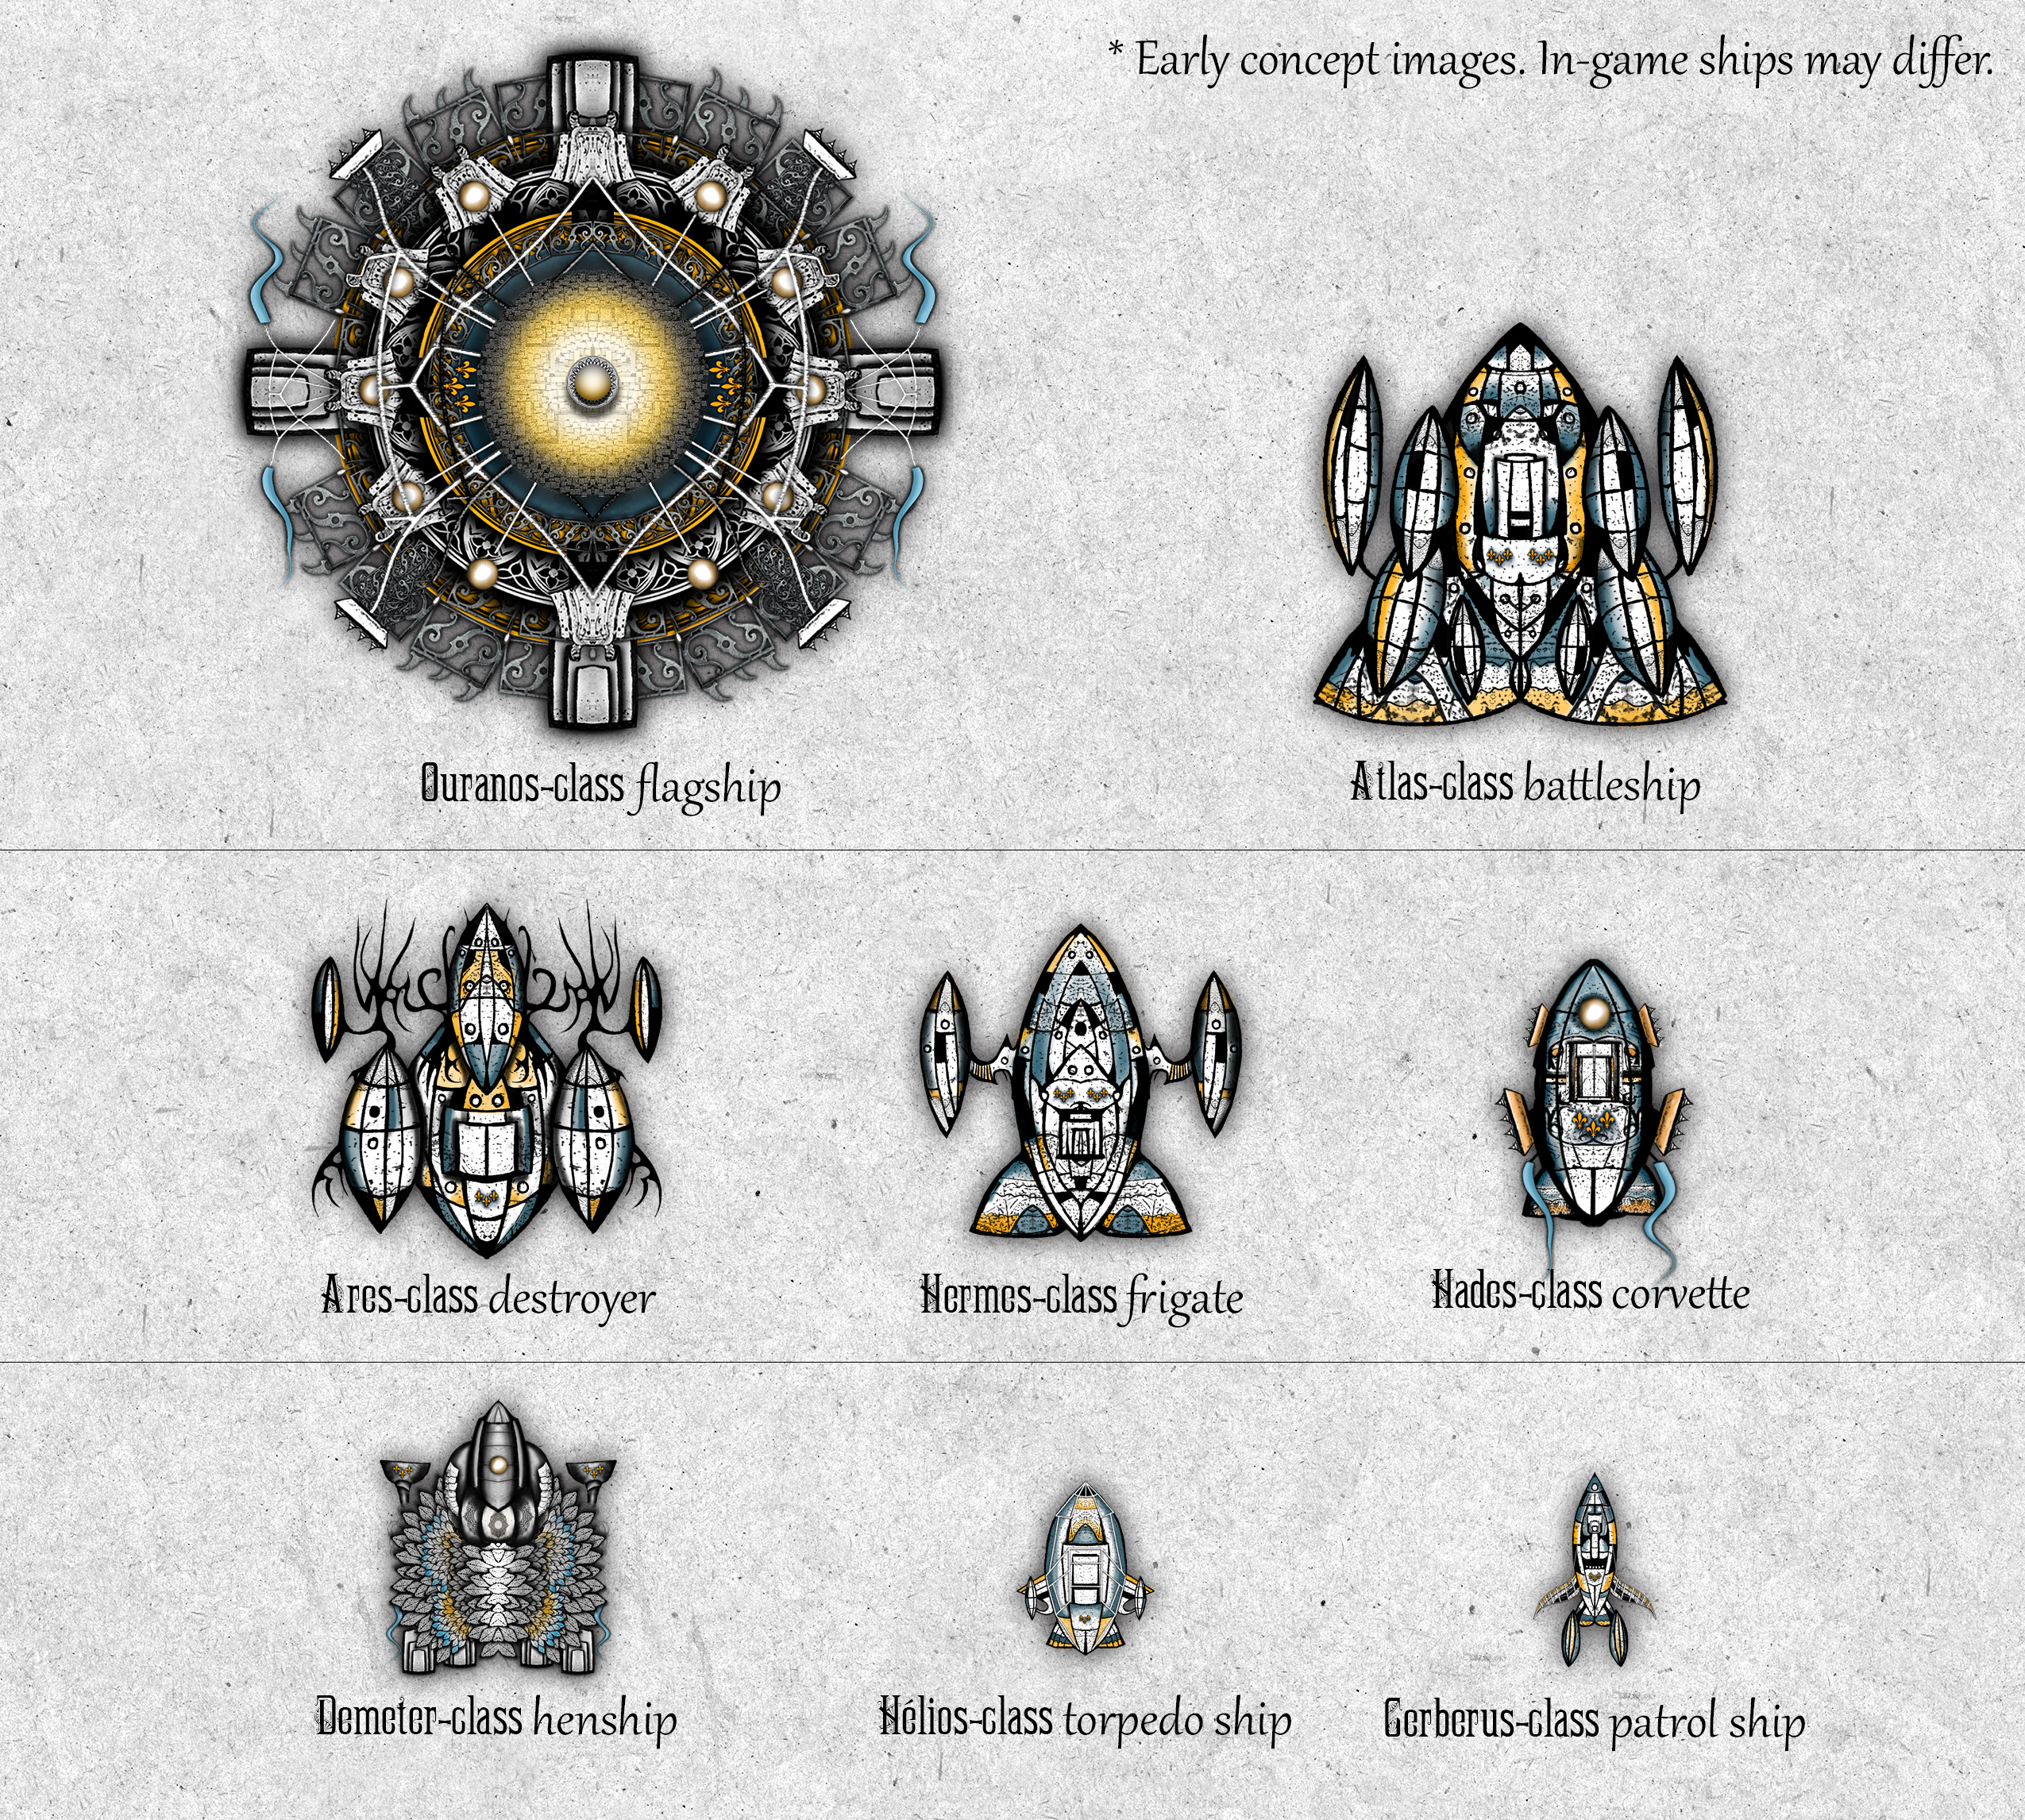 An overview of the ships in Conflicks: The Celestial Empire